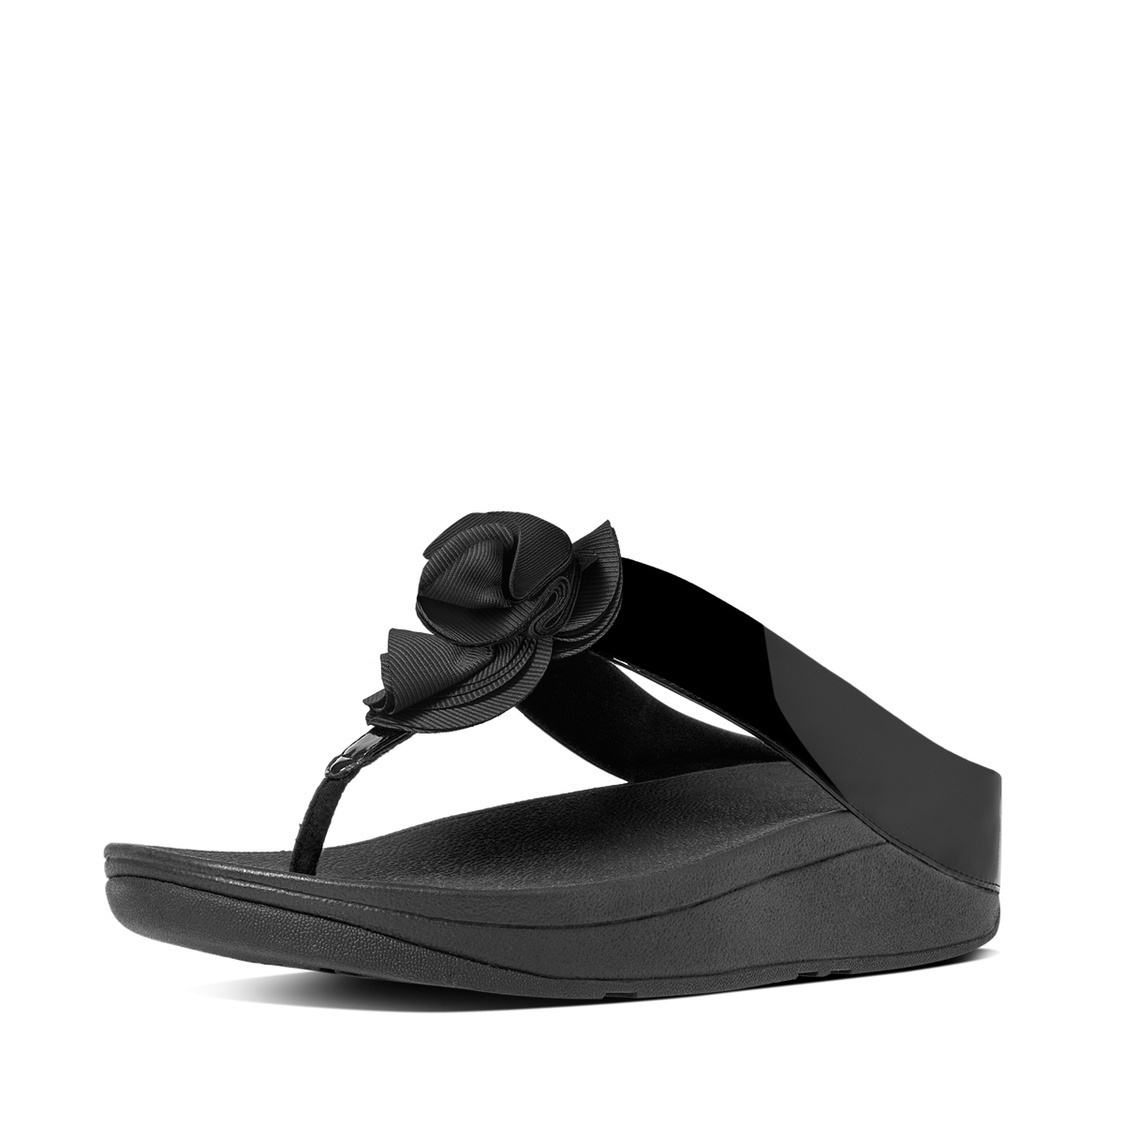 Florrie Patent Toe-Thong Sandals